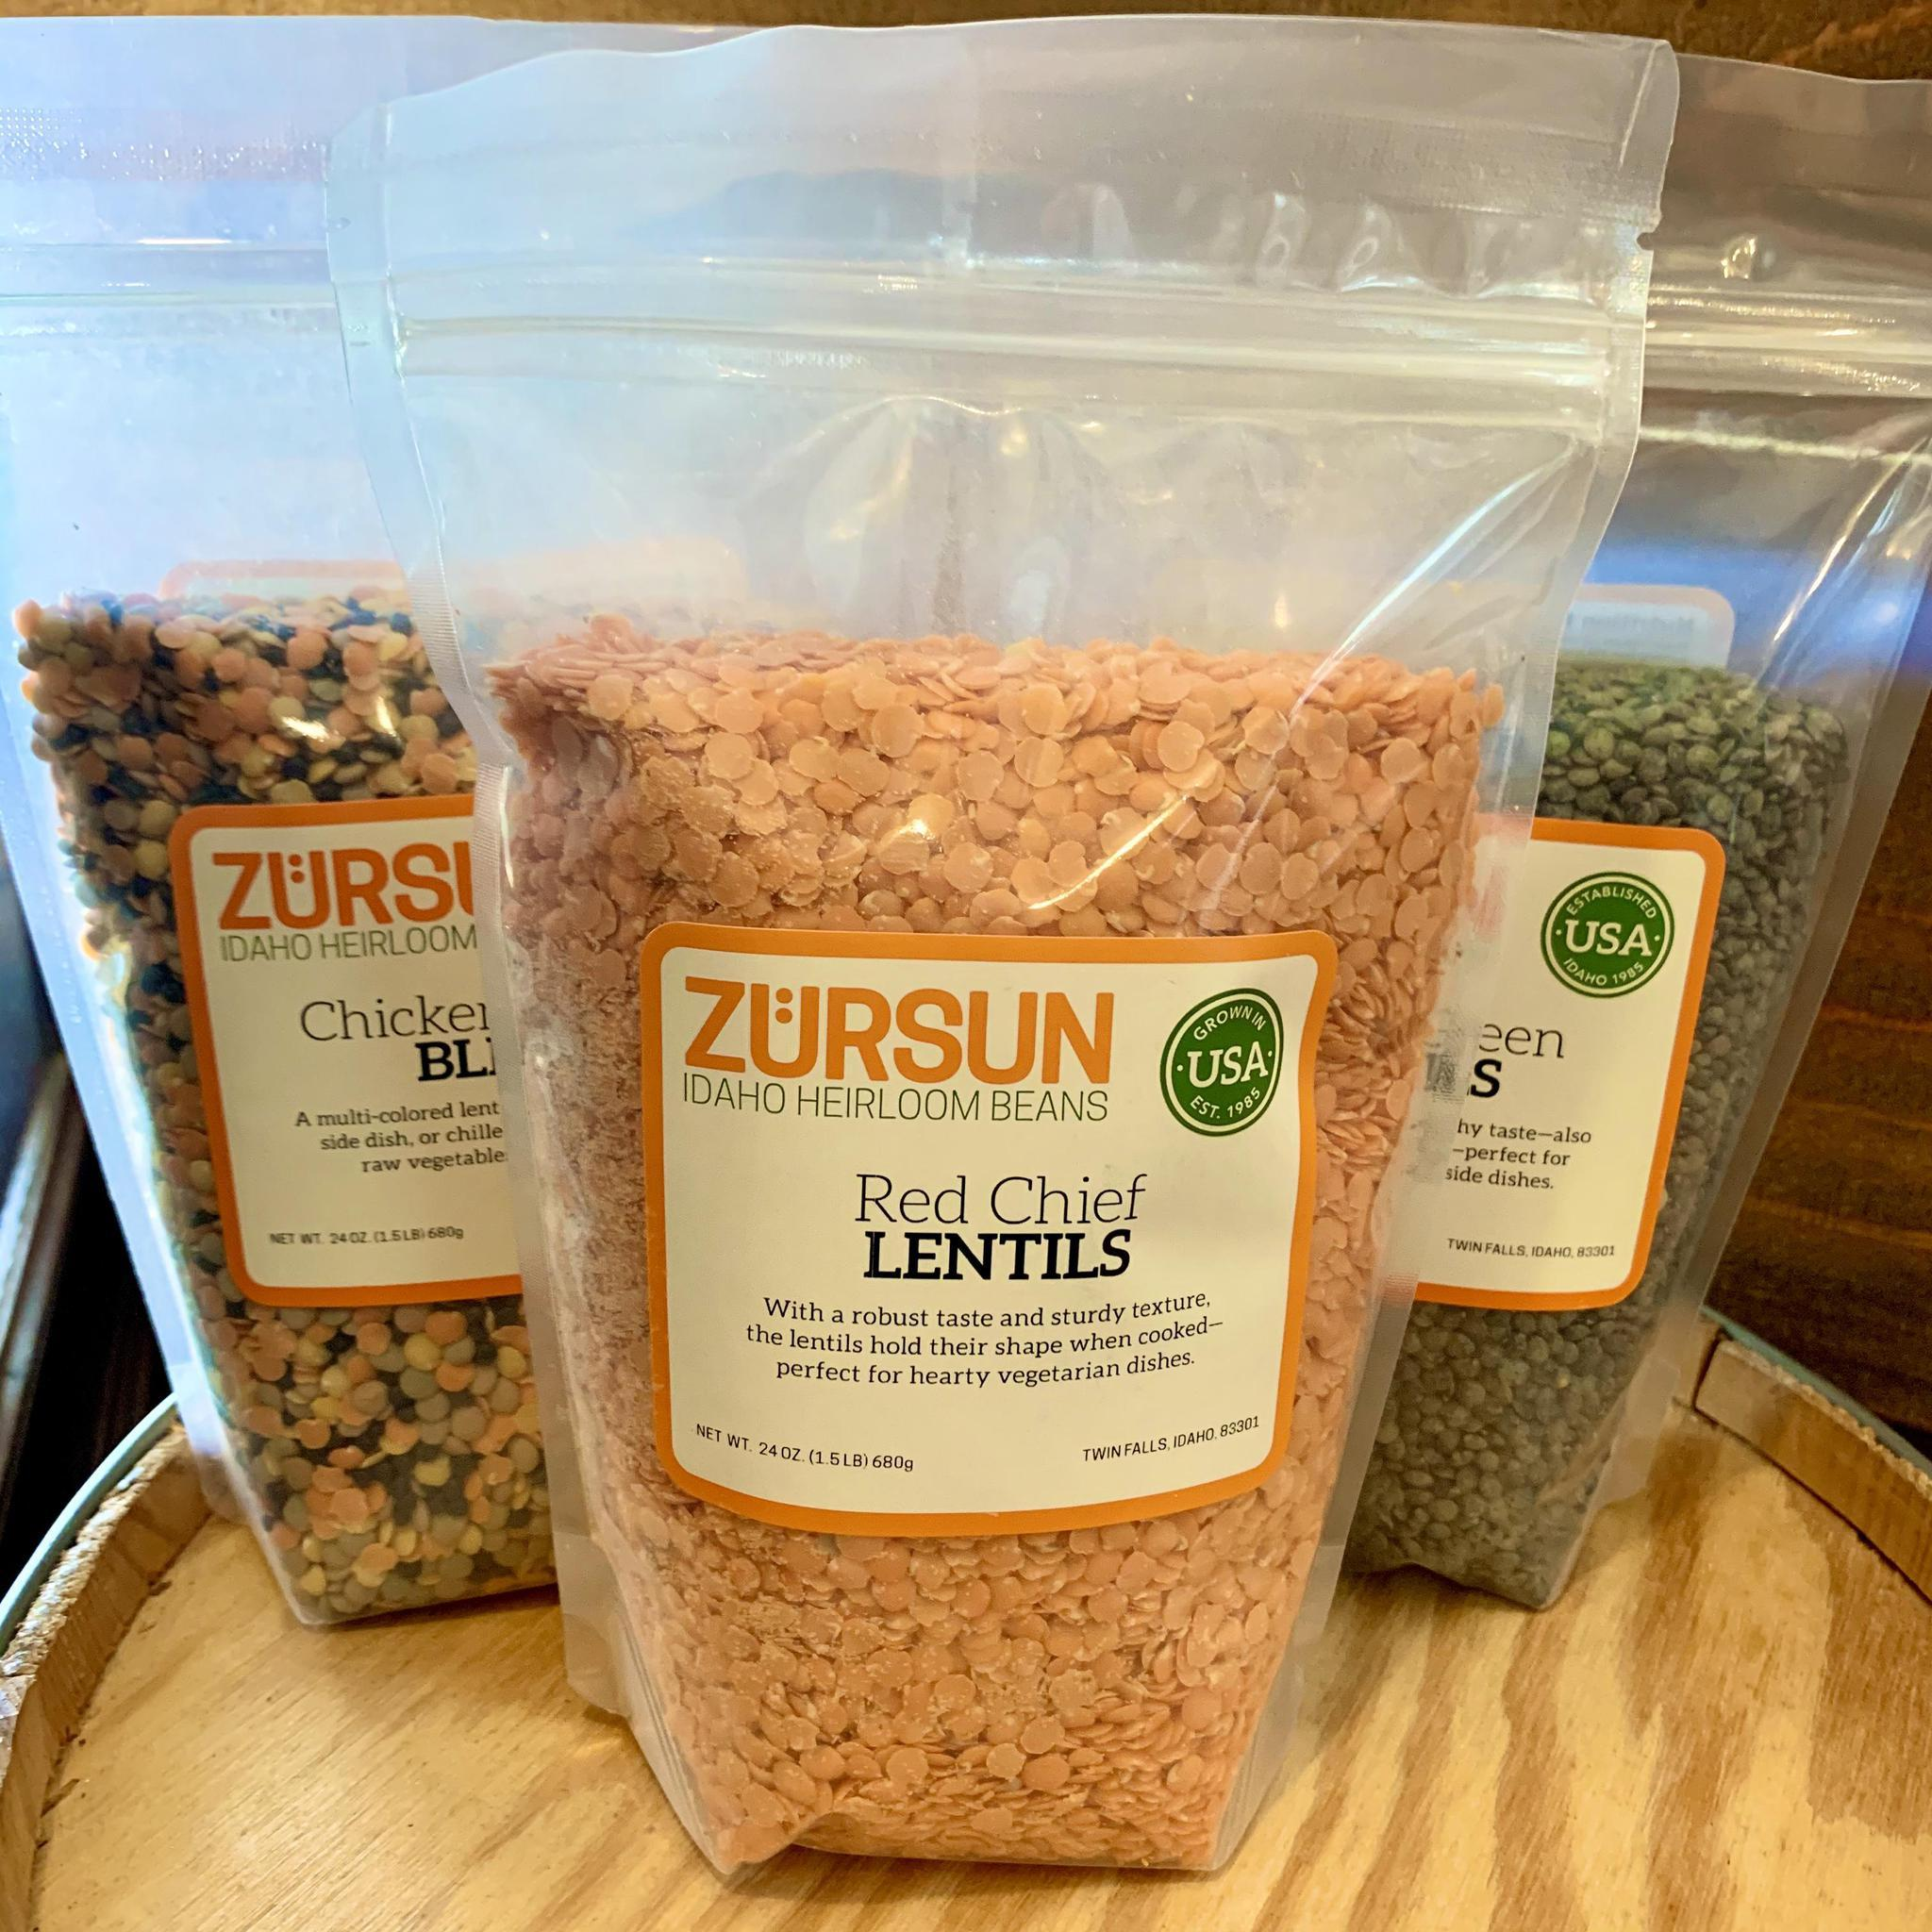 Heirloom Lentils by Zürsun Idaho Heirloom Beans Red Chief